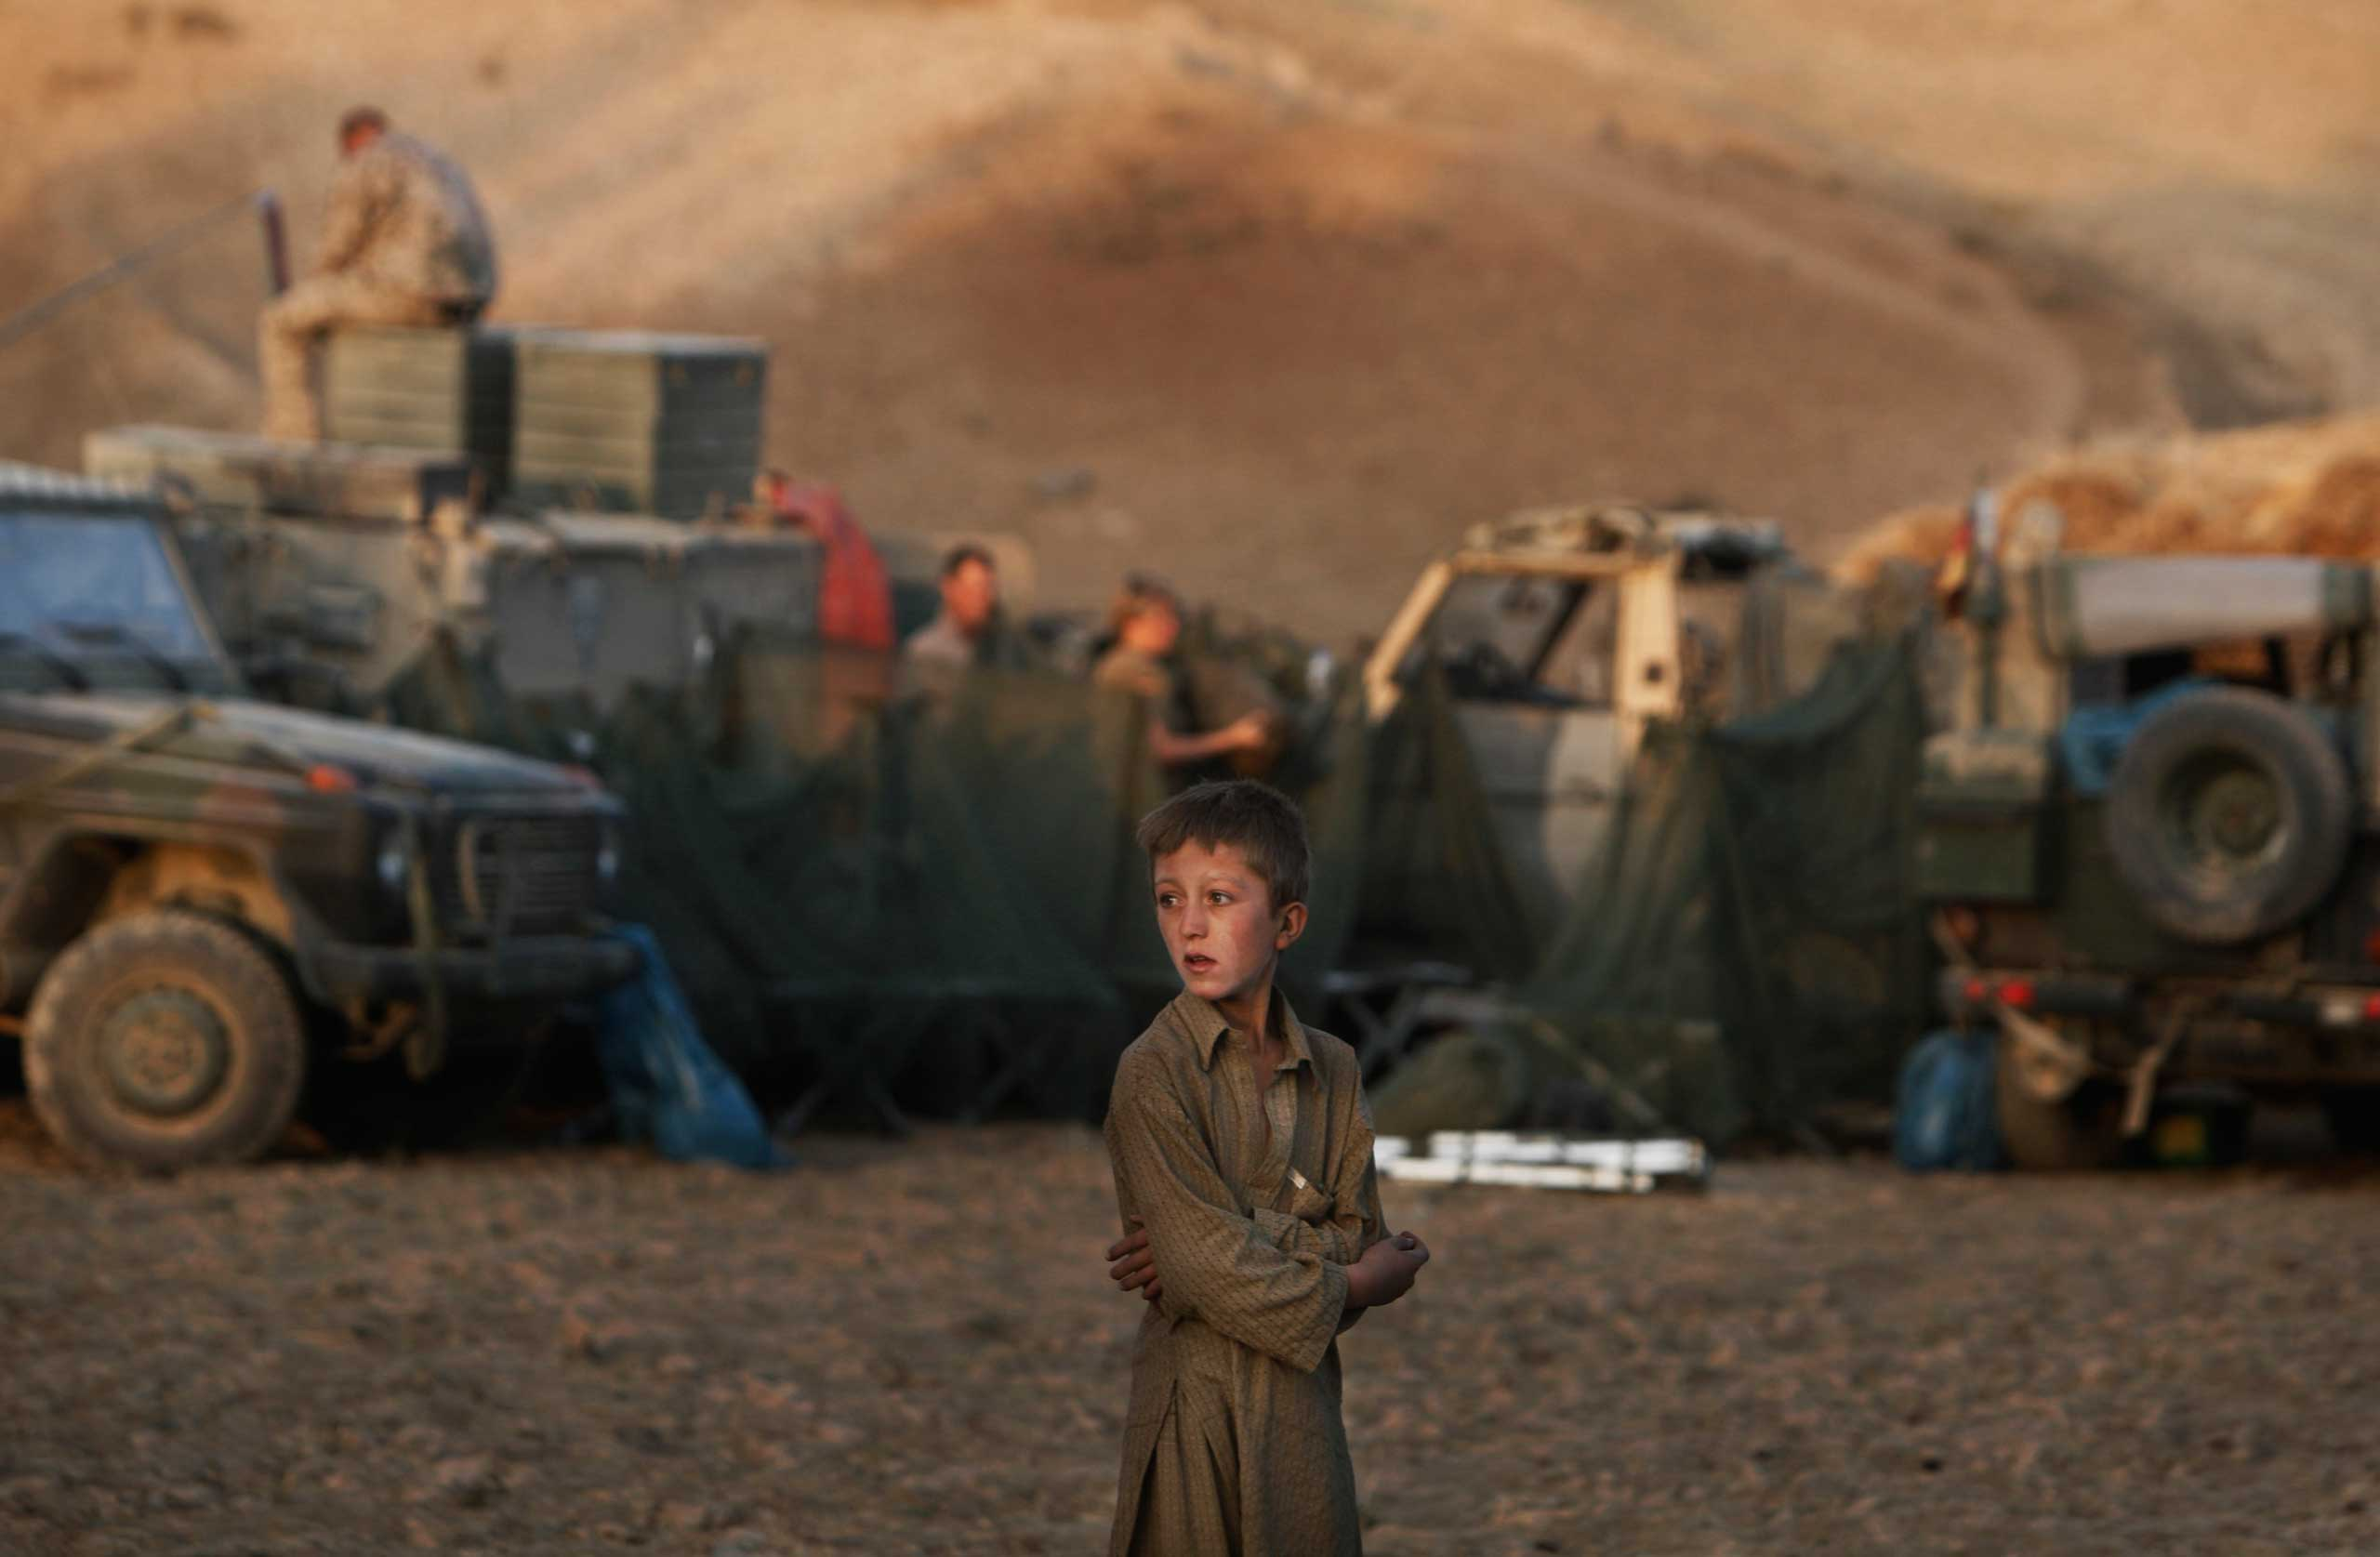 An Afghan boy looks on as German ISAF soldiers prepare a temporary camp to overnight during a long term patrol in the mountainous region of Feyzabad, east of Kunduz, Afghanistan, Sept. 14, 2009.